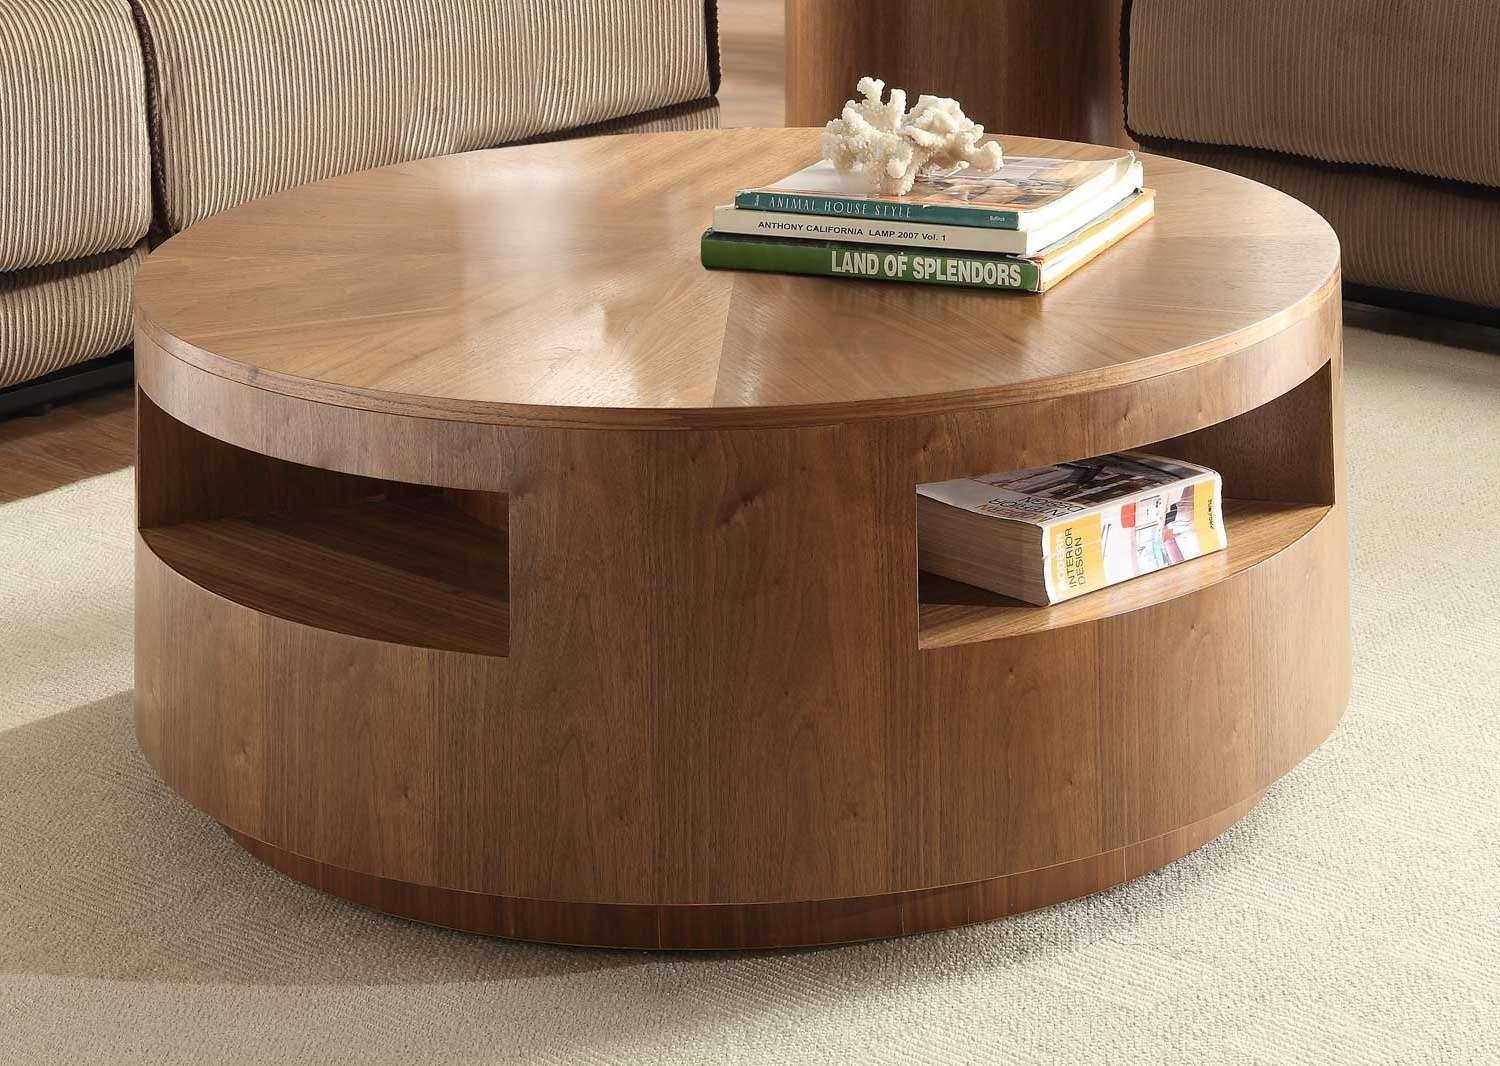 Captivating Round Coffee Tables With Storage Images Inspiration With Regard To Latest Circular Coffee Tables With Storage (View 4 of 20)